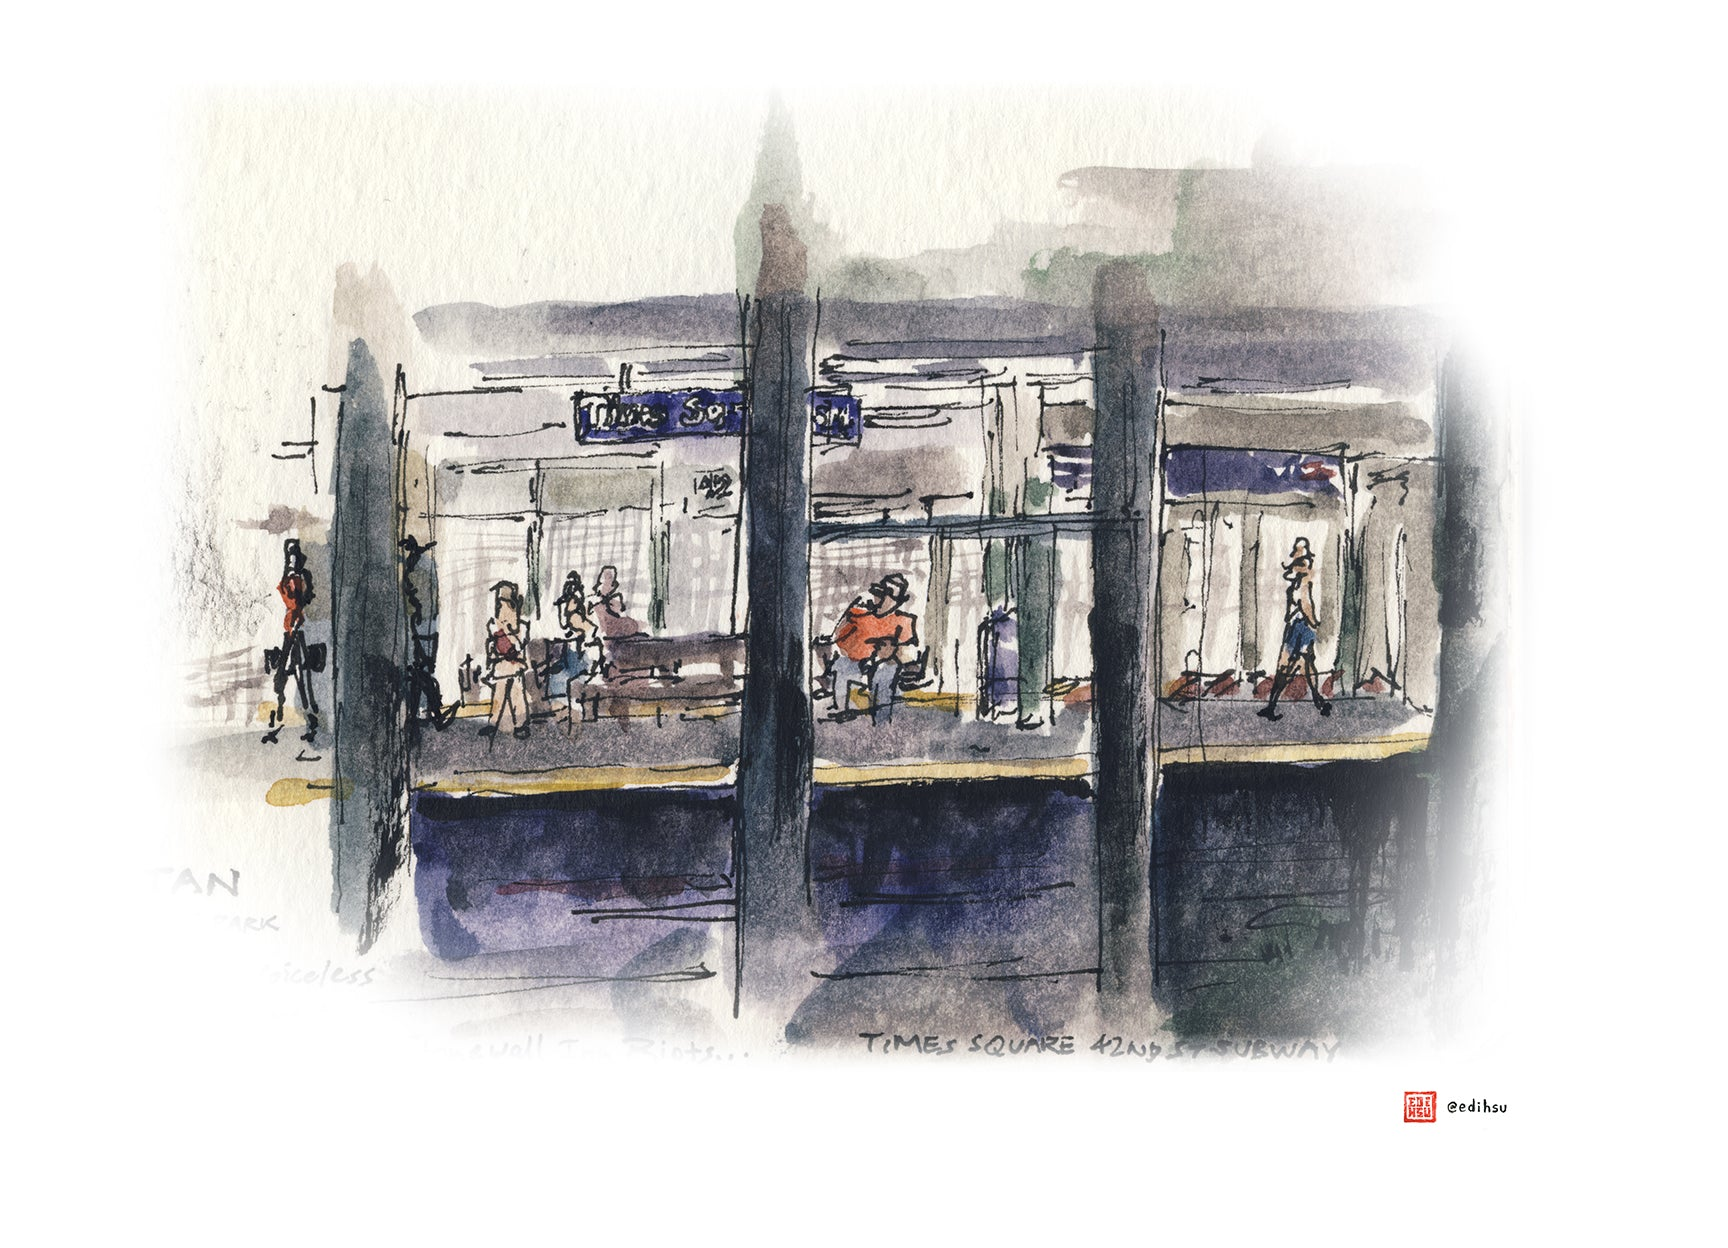 Subway Station - 42nd Street Times Square - Manhattan NYC - Watercolor by Edi Hsu